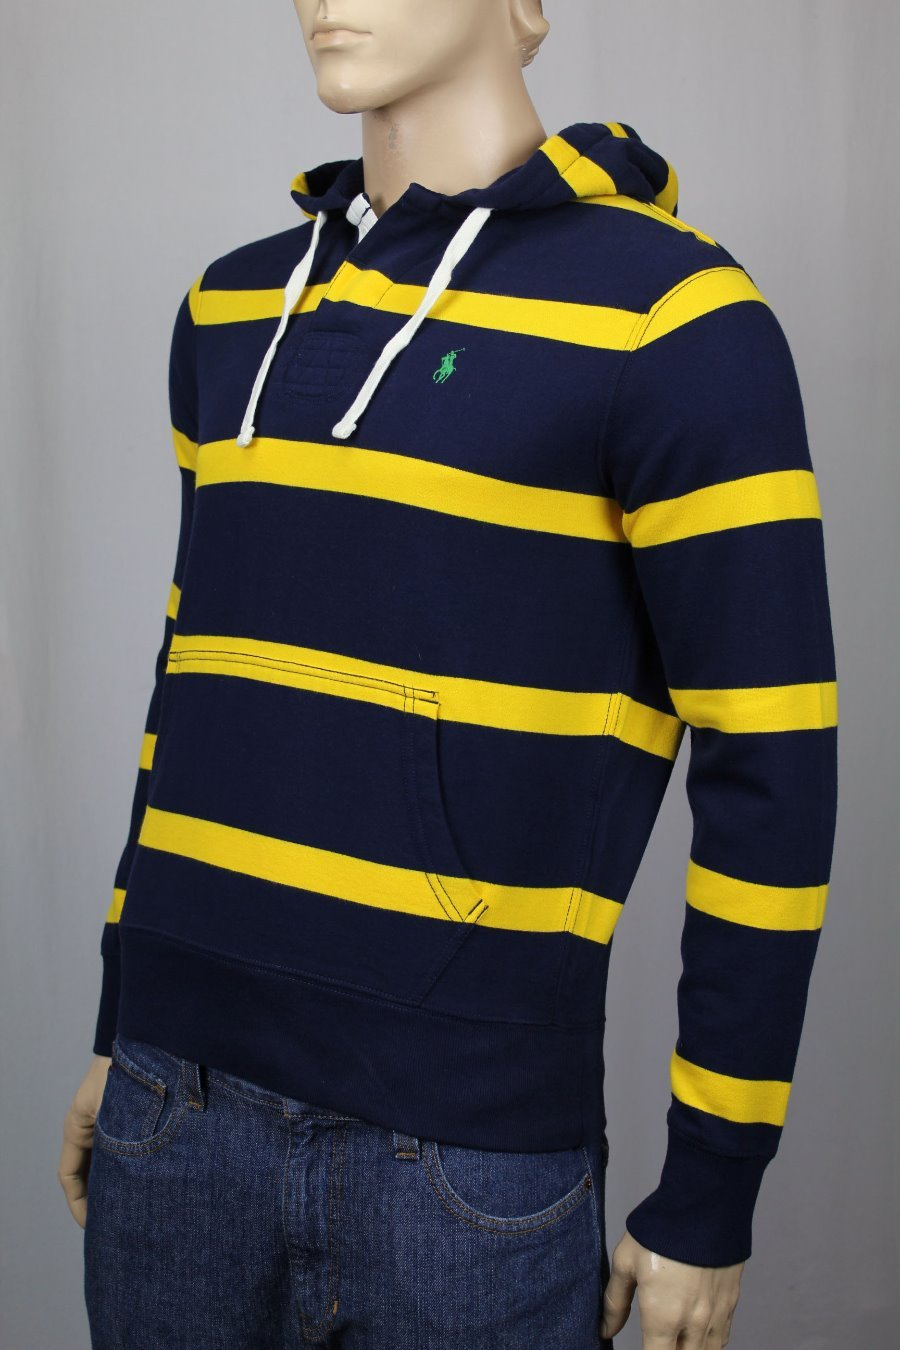 da3ccdee06e Details about Polo Ralph Lauren Navy Blue Yellow Rugby Hoodie Sweatshirt  Green Pony NWT